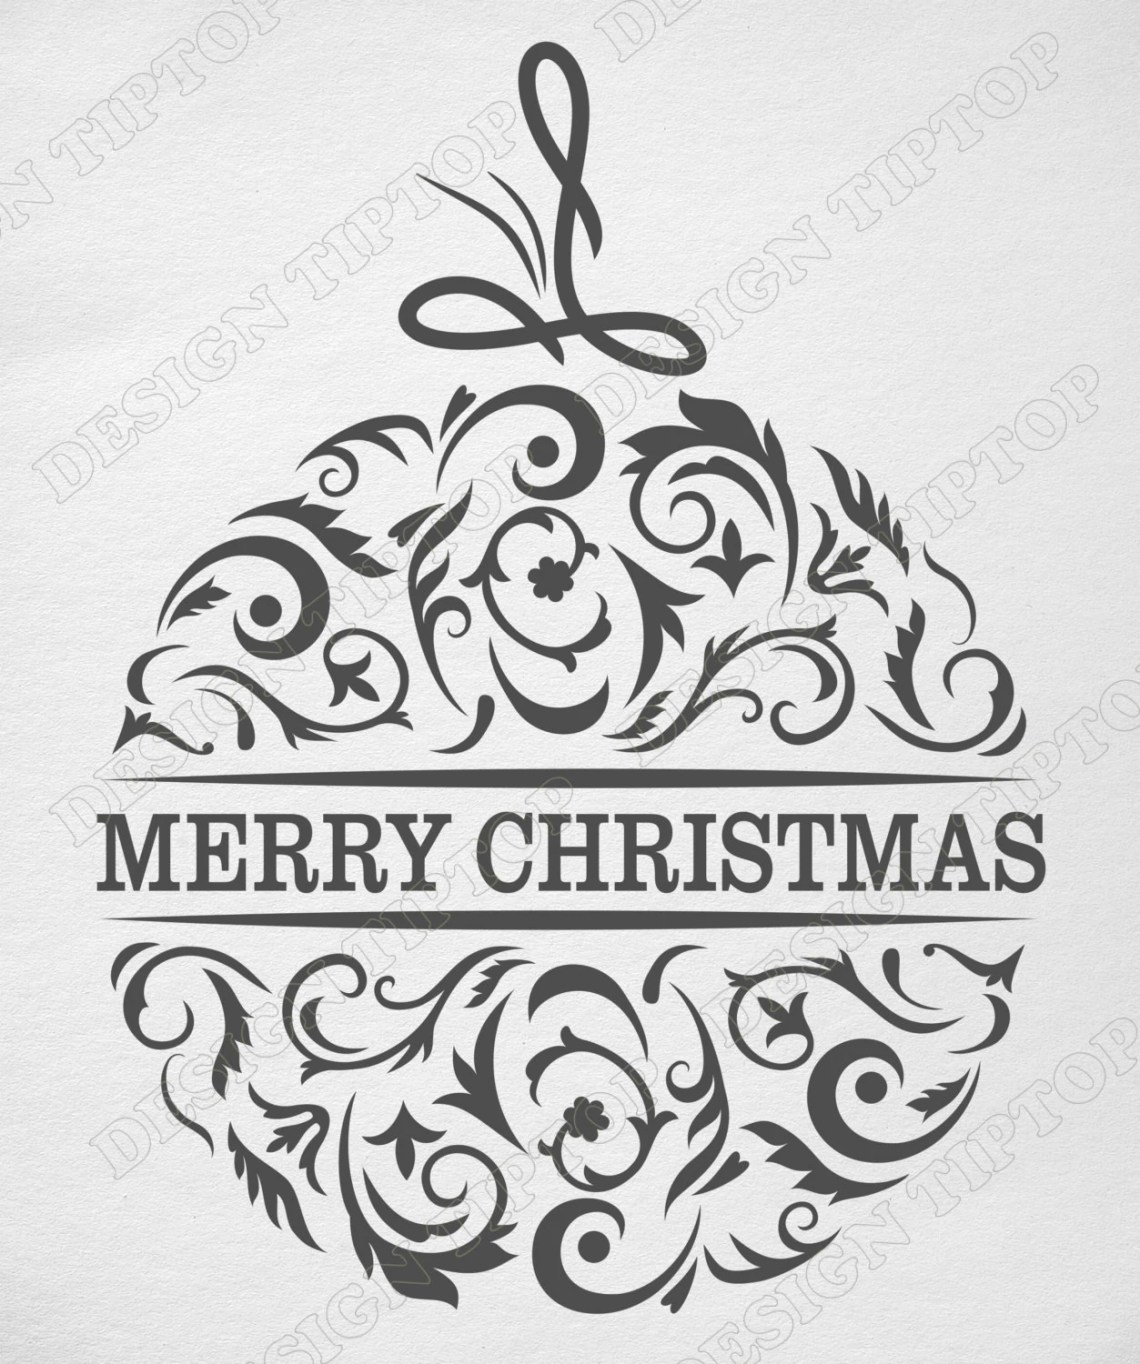 Download Merry Christmas SVG Christmas SVG Christmas SVG designs